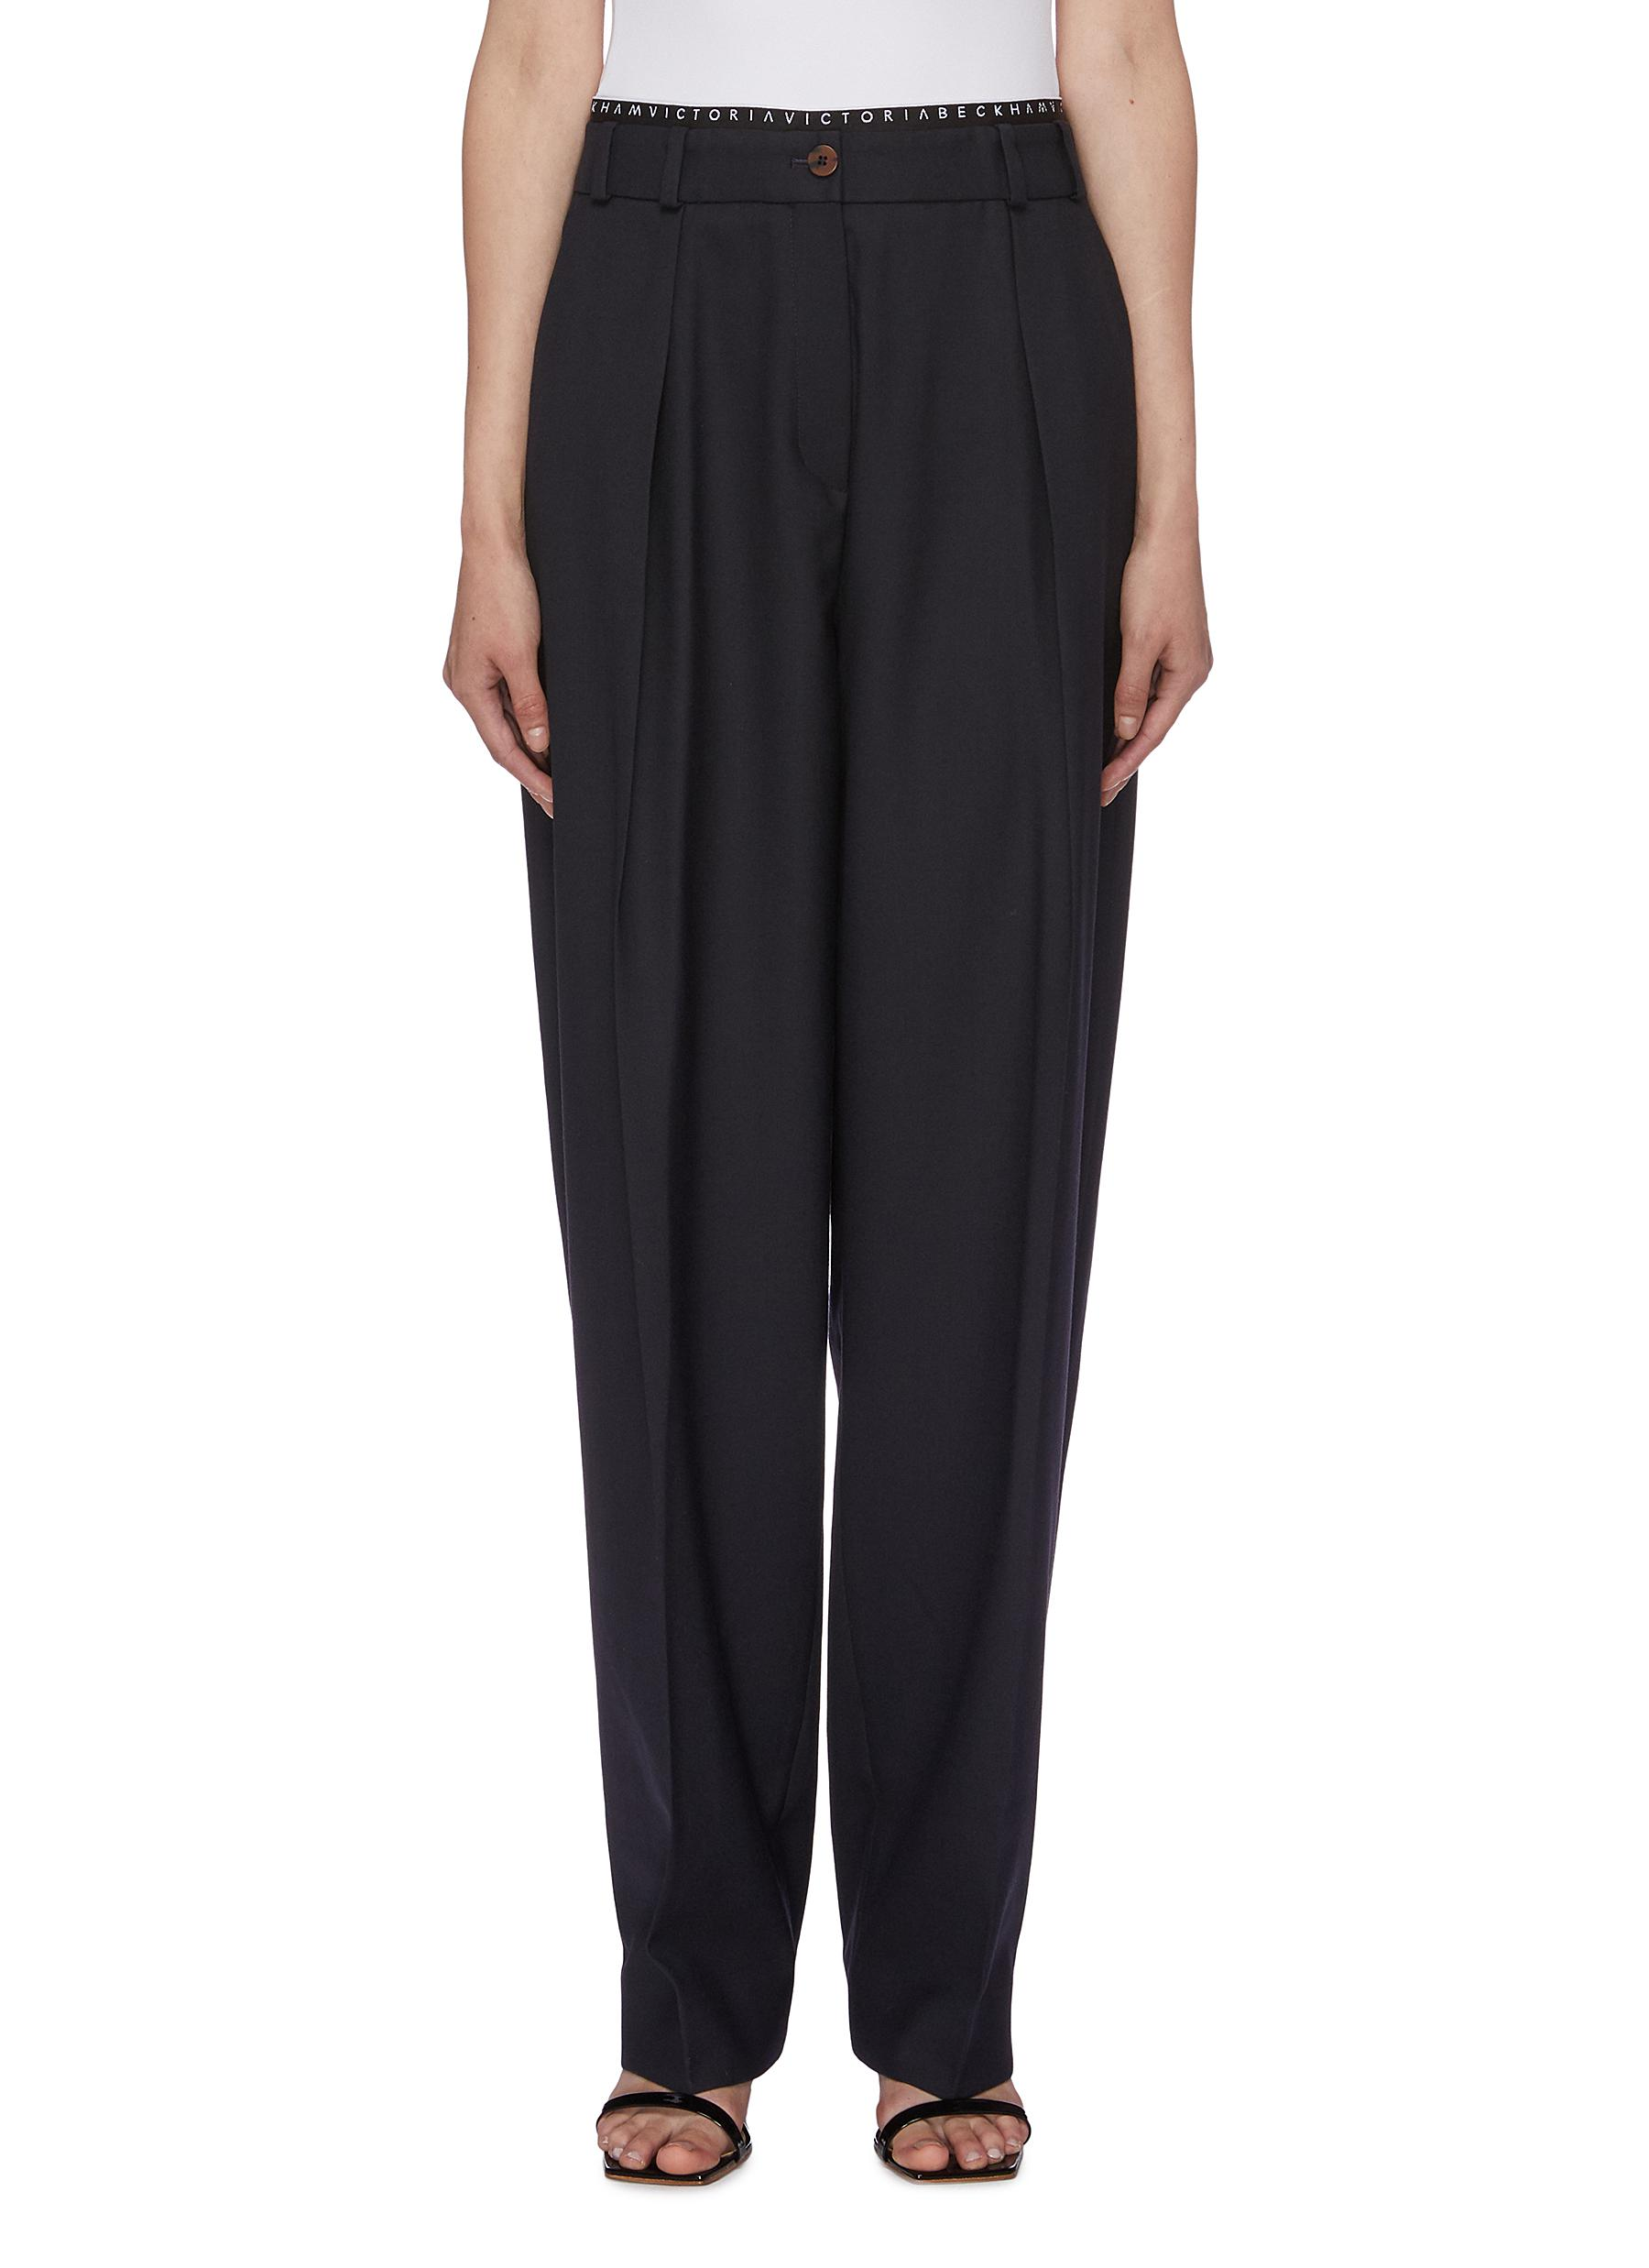 Logo waistband pleated pants by Victoria, Victoria Beckham